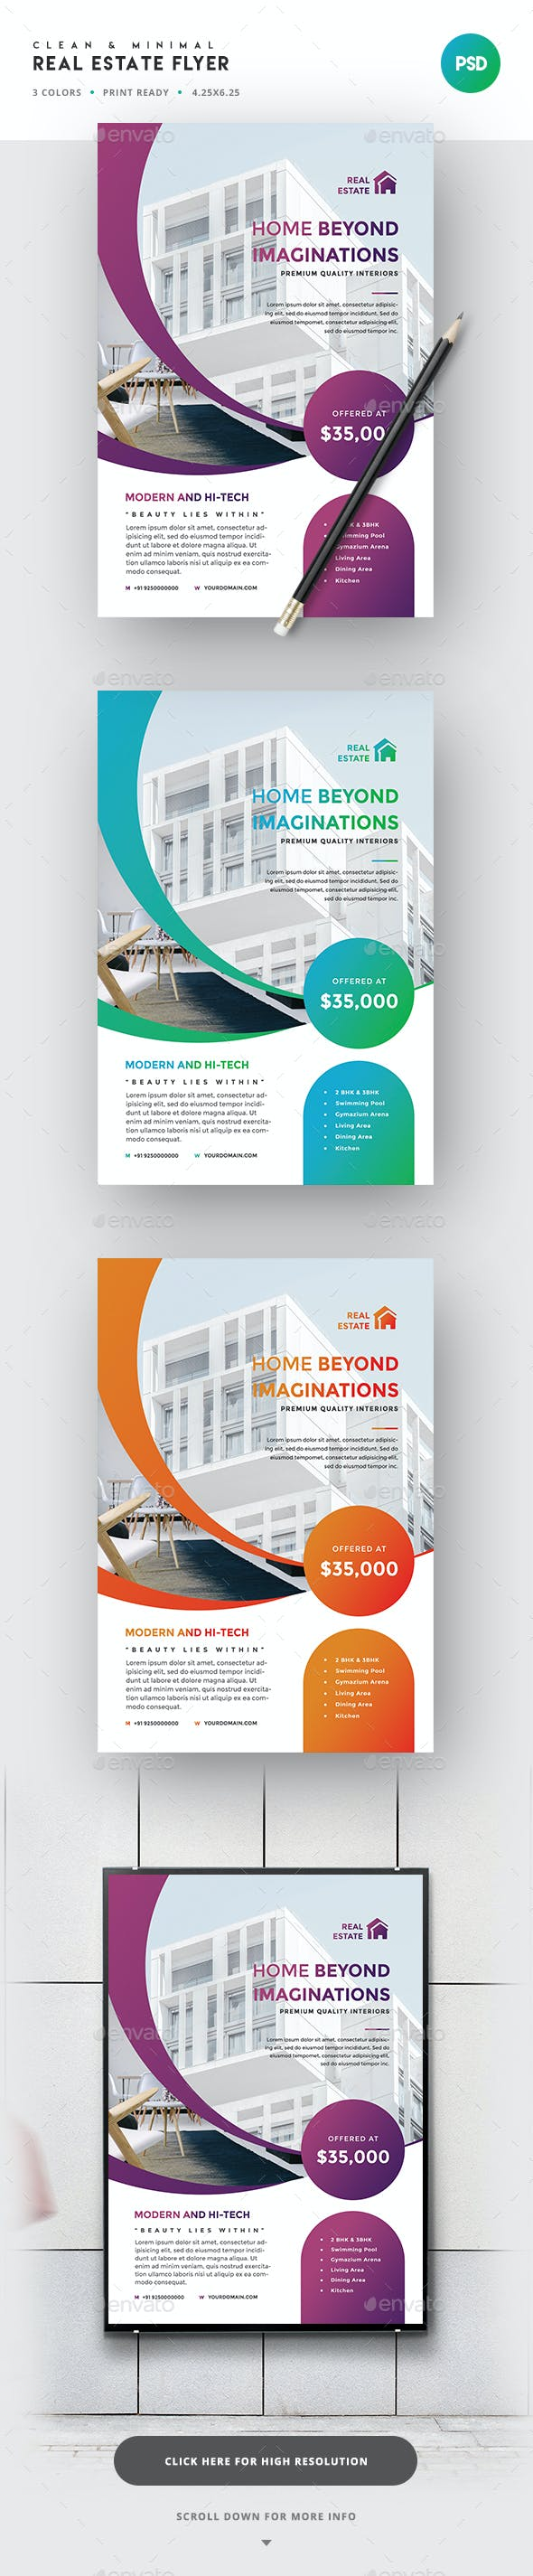 real estate flyer template by superboy1 graphicriver